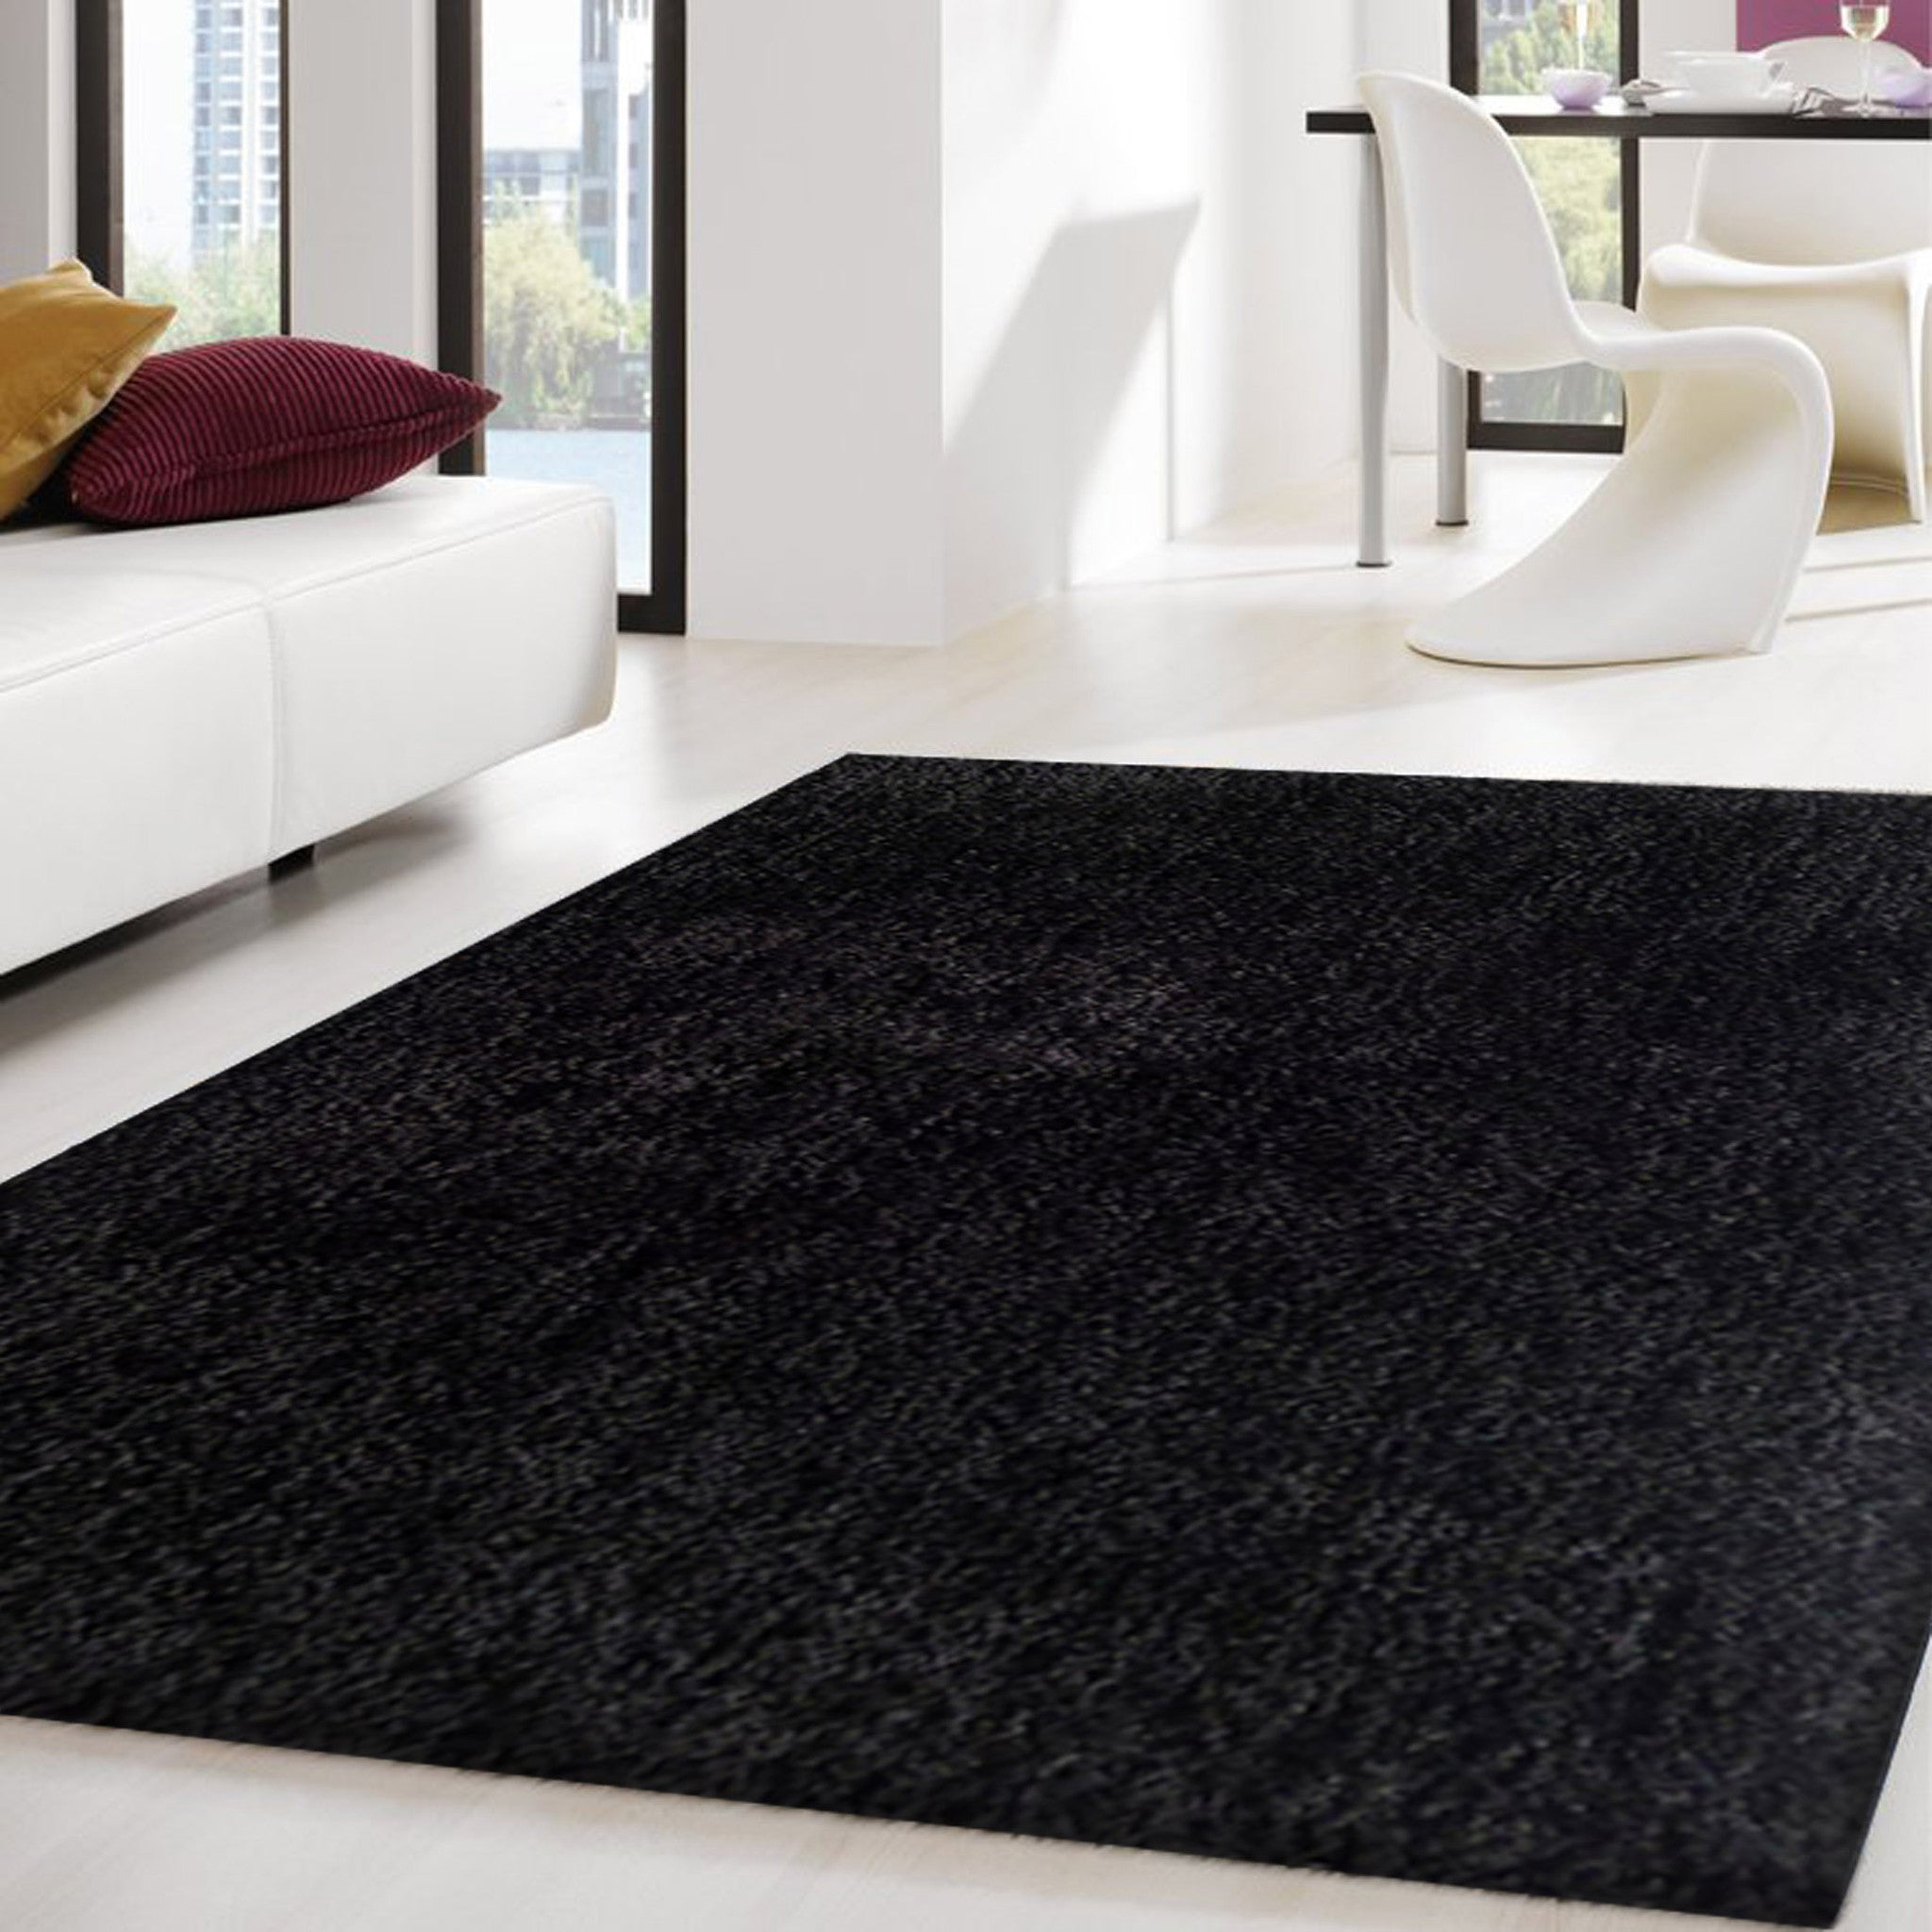 2 Piece Set Solid Black Thick Plush Shag Area Rug Rug